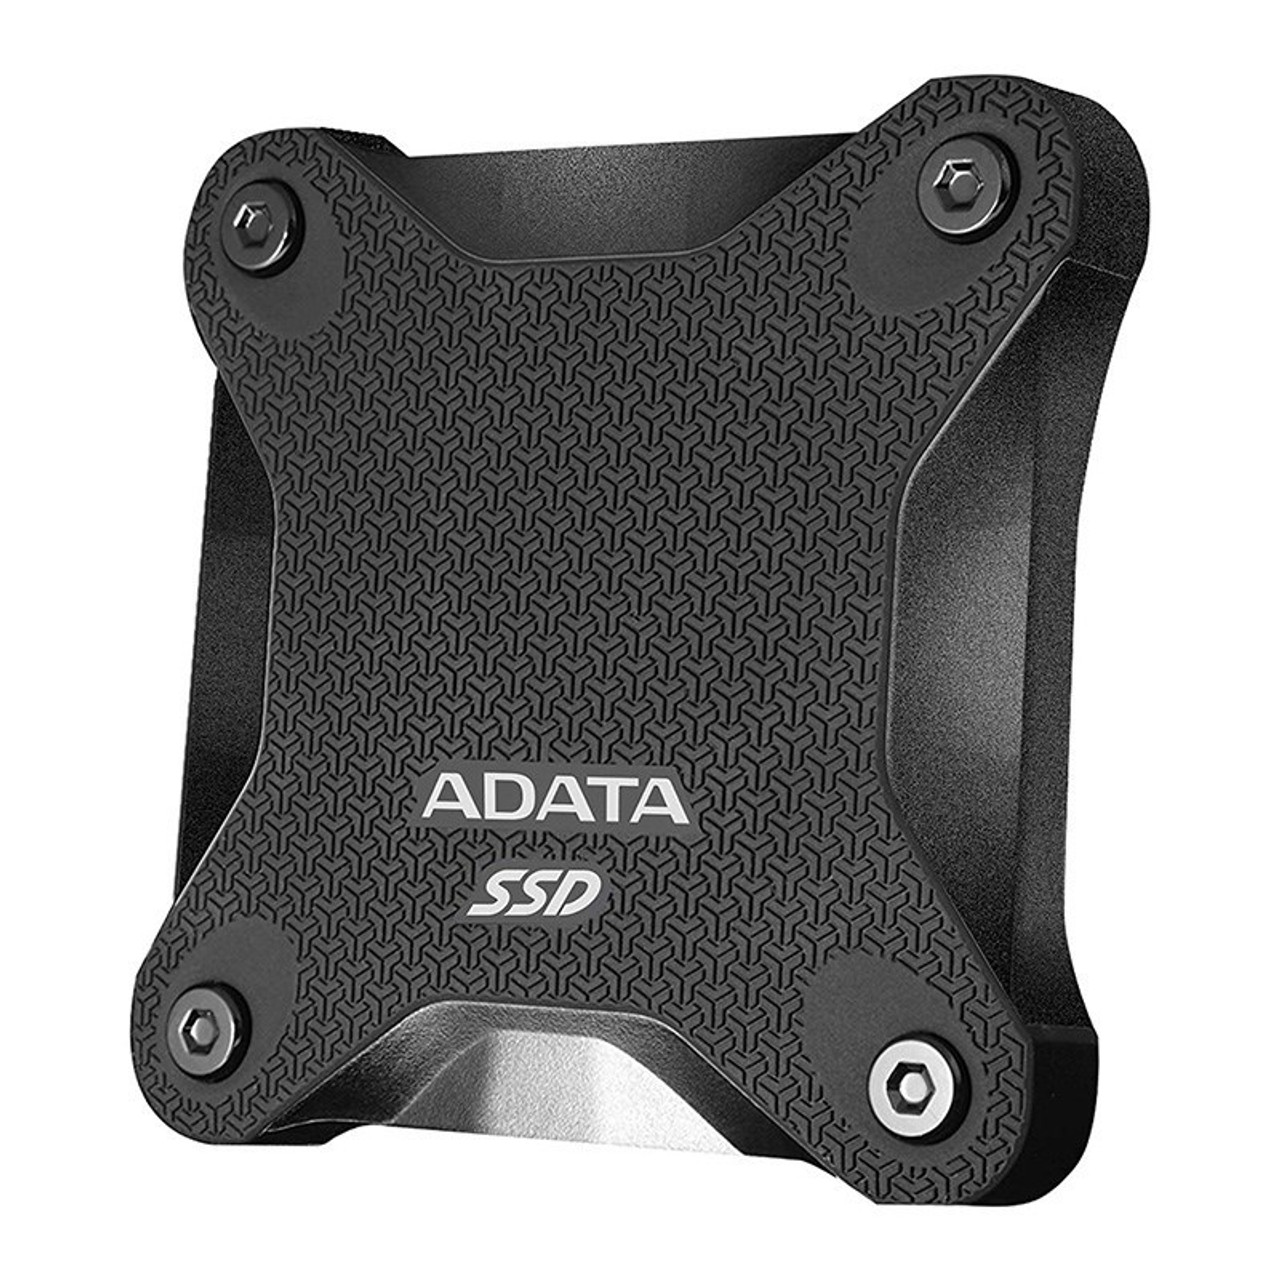 Image for Adata SD600Q 960GB USB 3.2 Gen 1 Portable External 3D NAND SSD - Black CX Computer Superstore